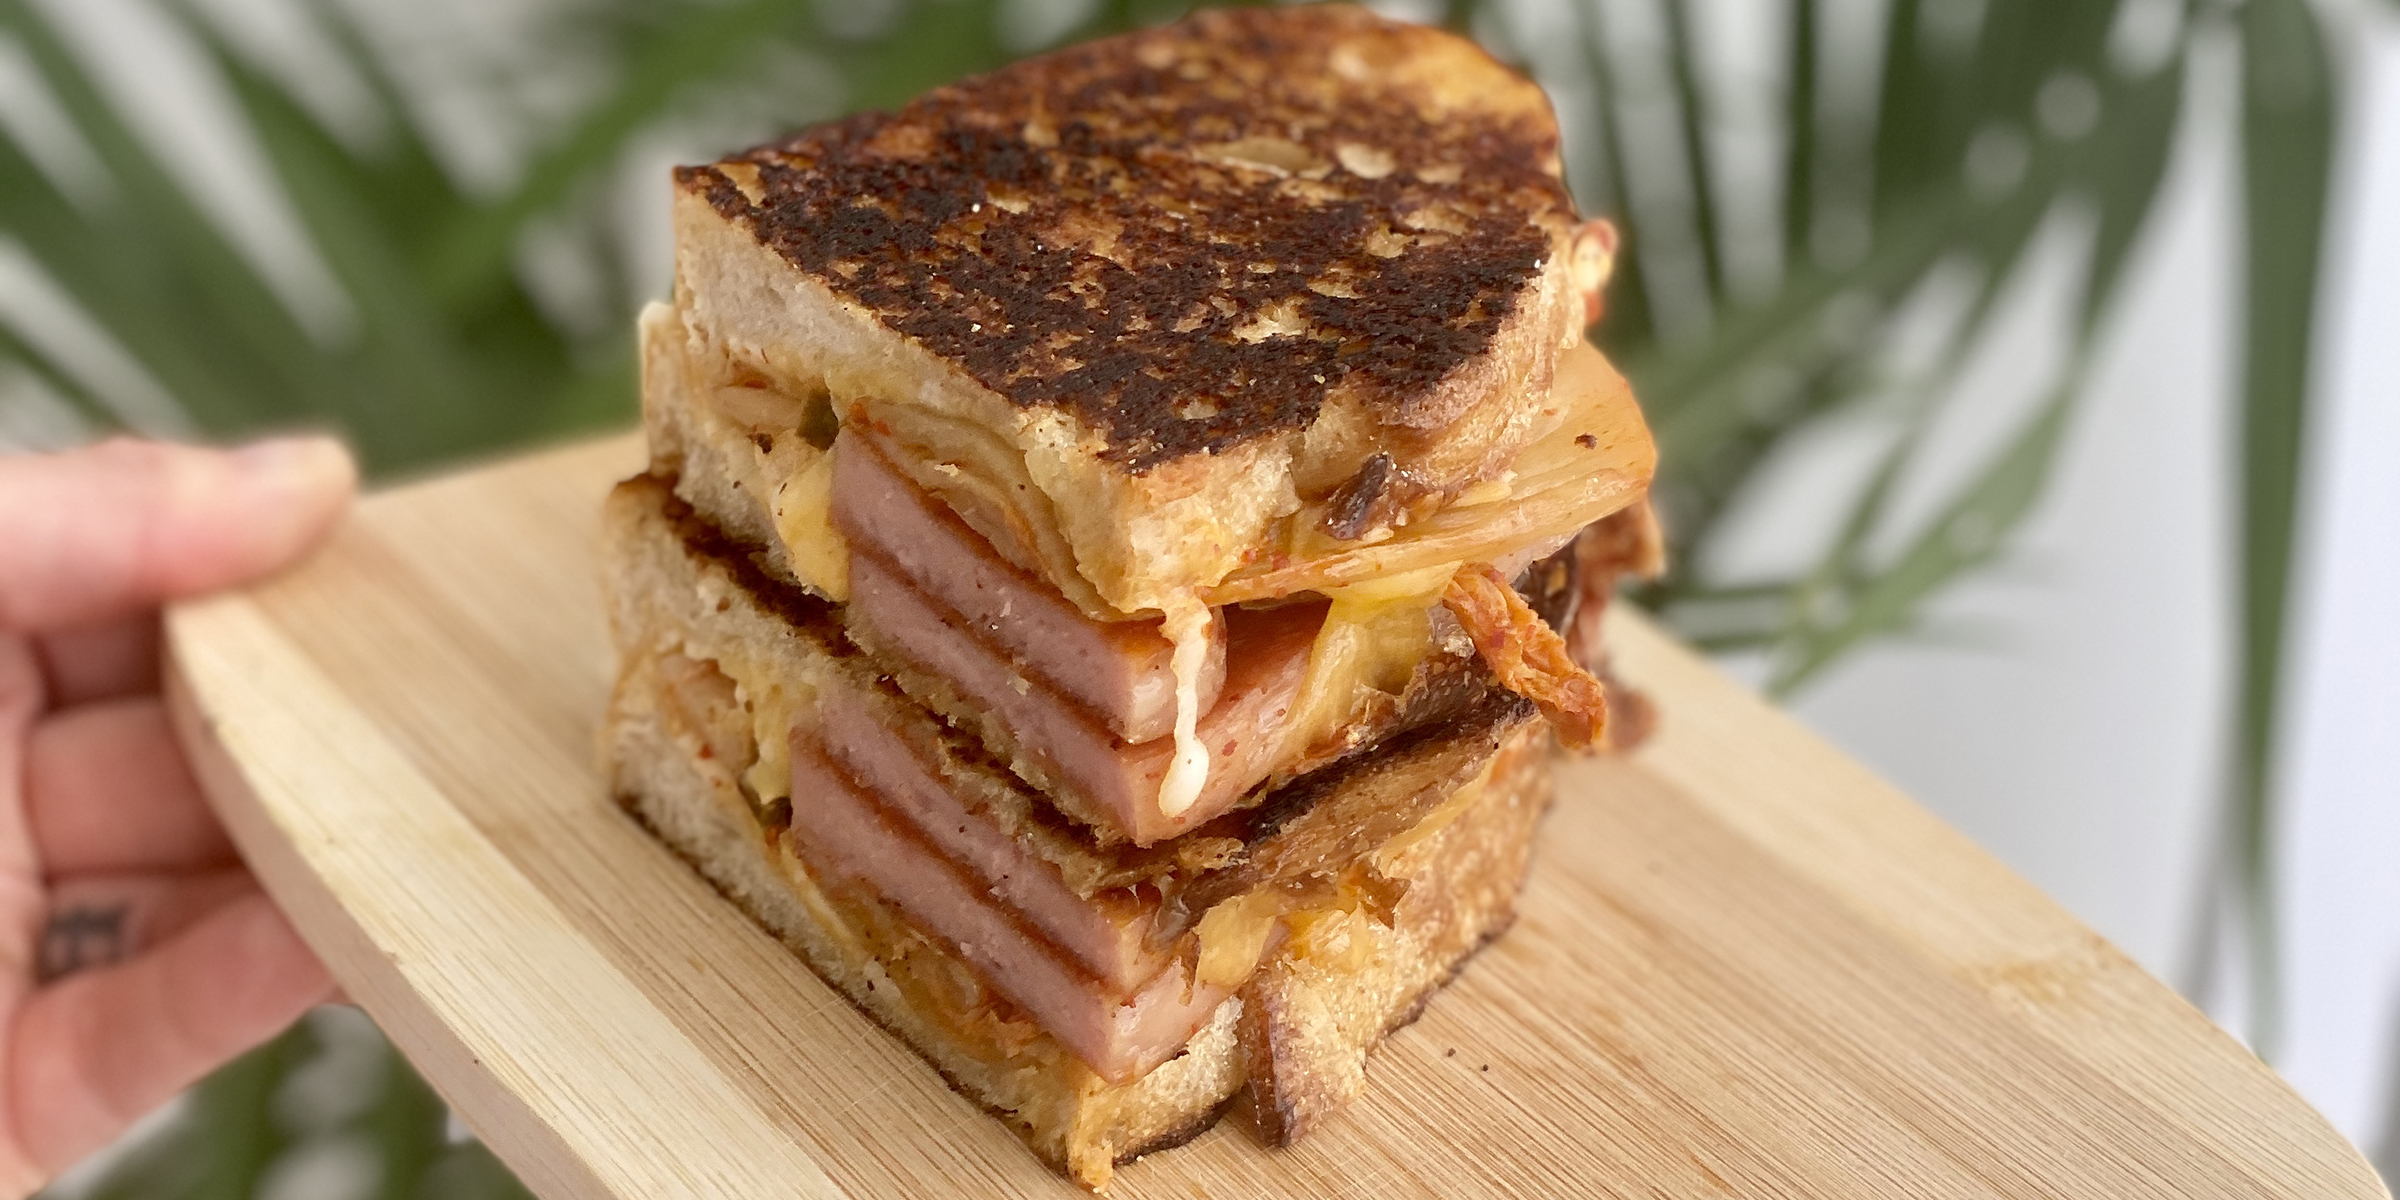 Level up grilled cheese sandwiches with kimchi and Spam